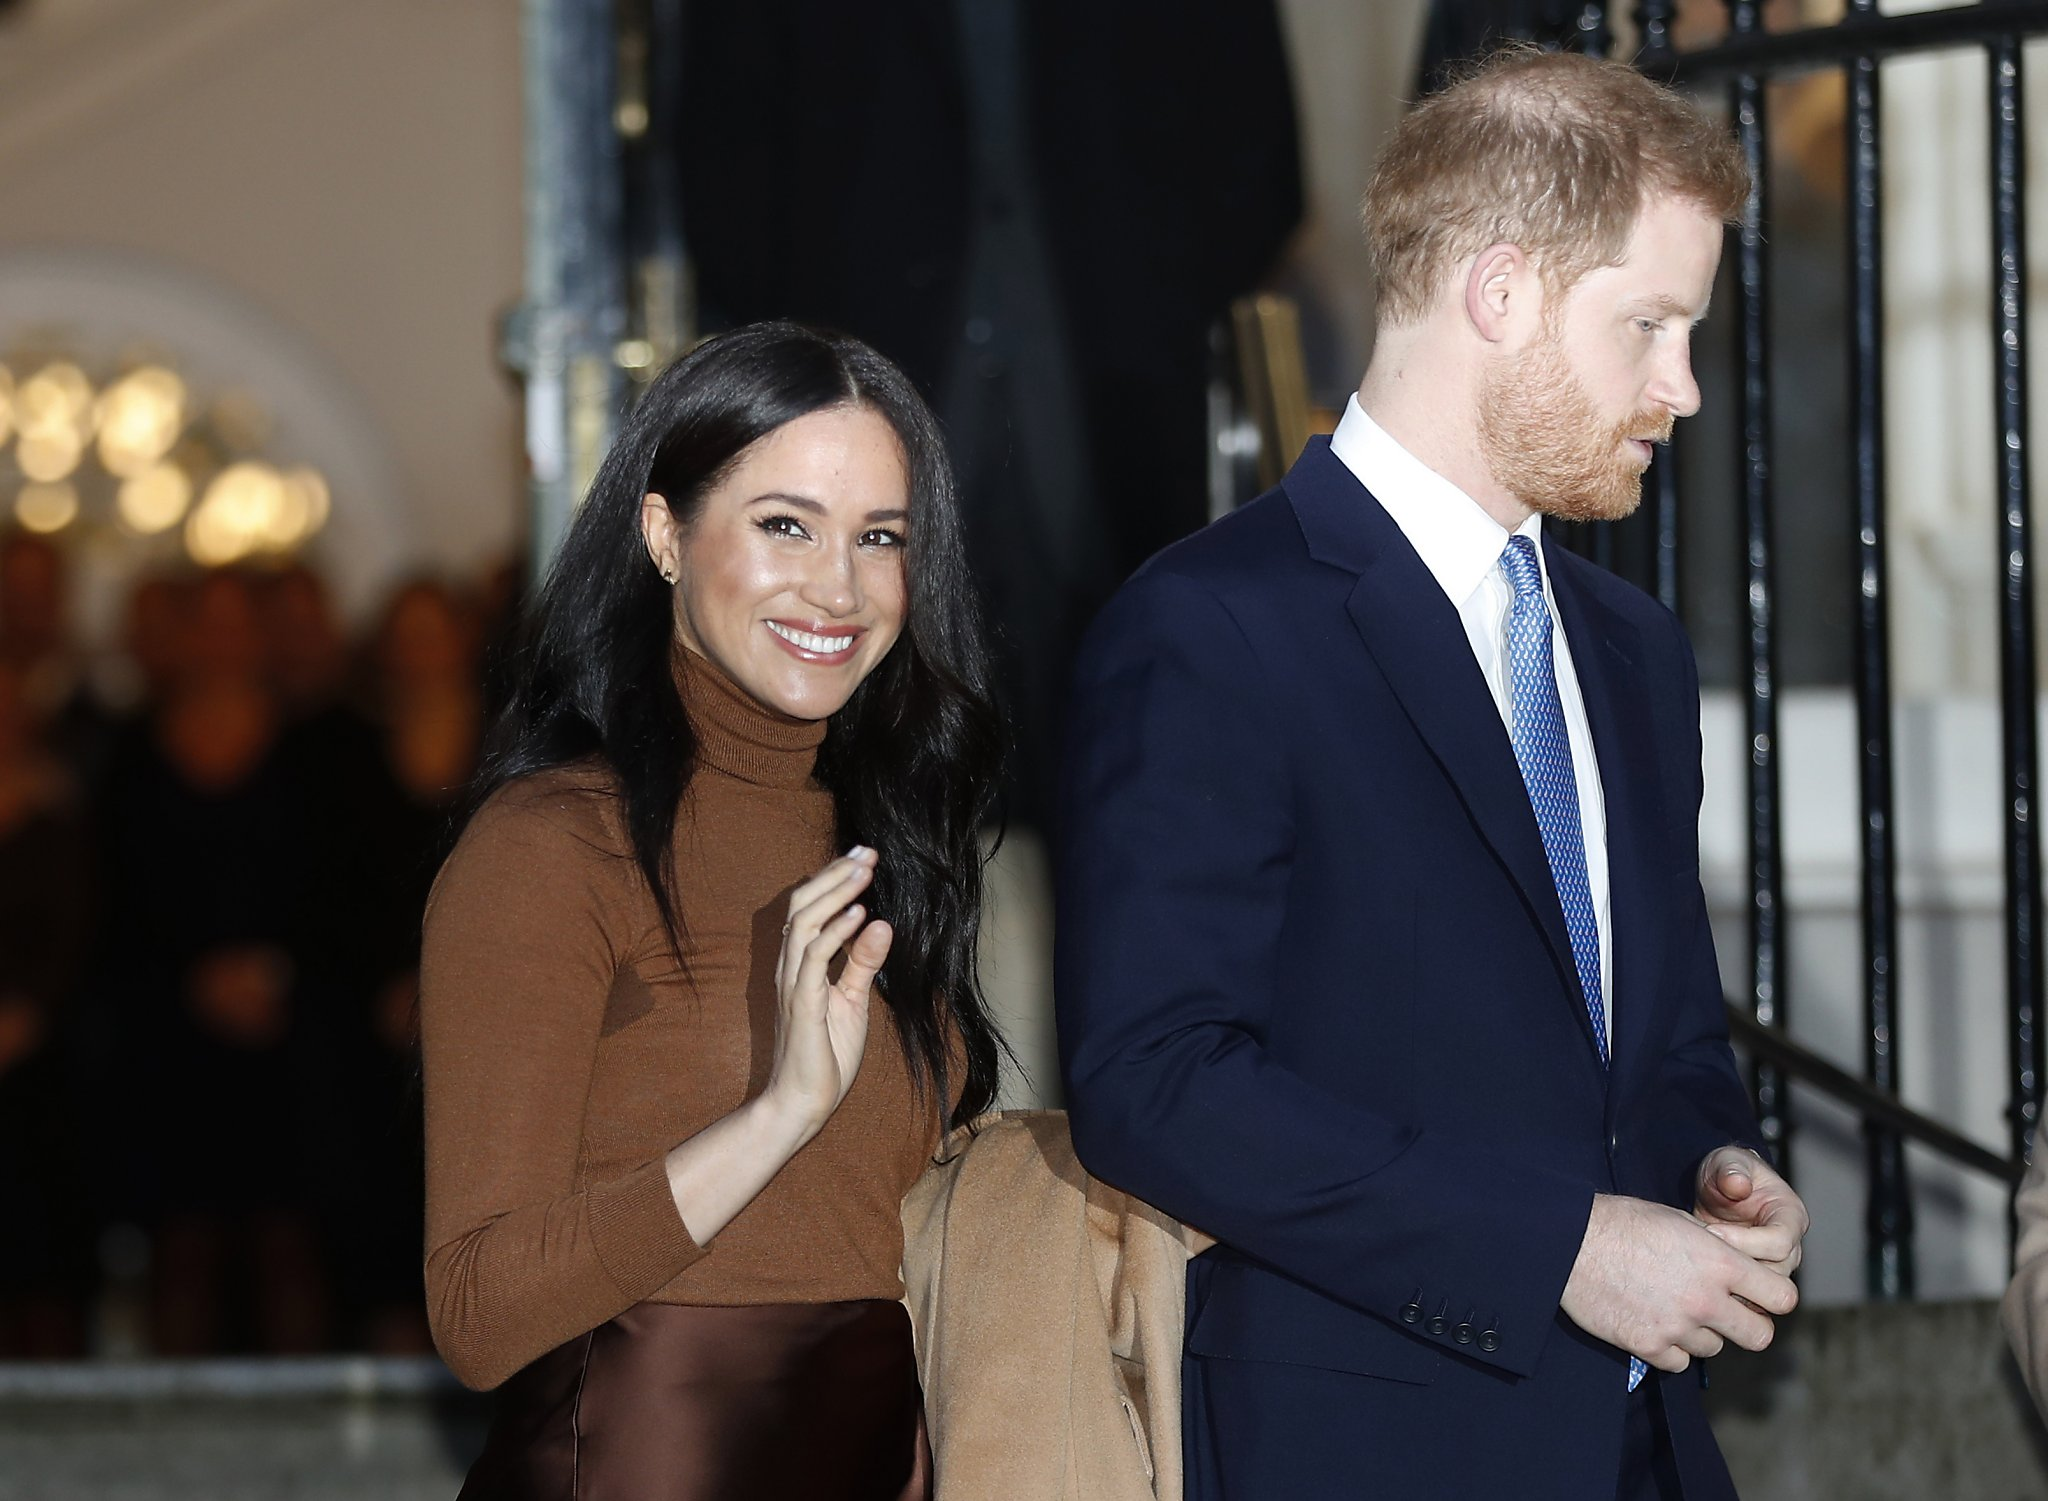 Meghan Markle, Prince Harry reportedly made secret visit to Stanford